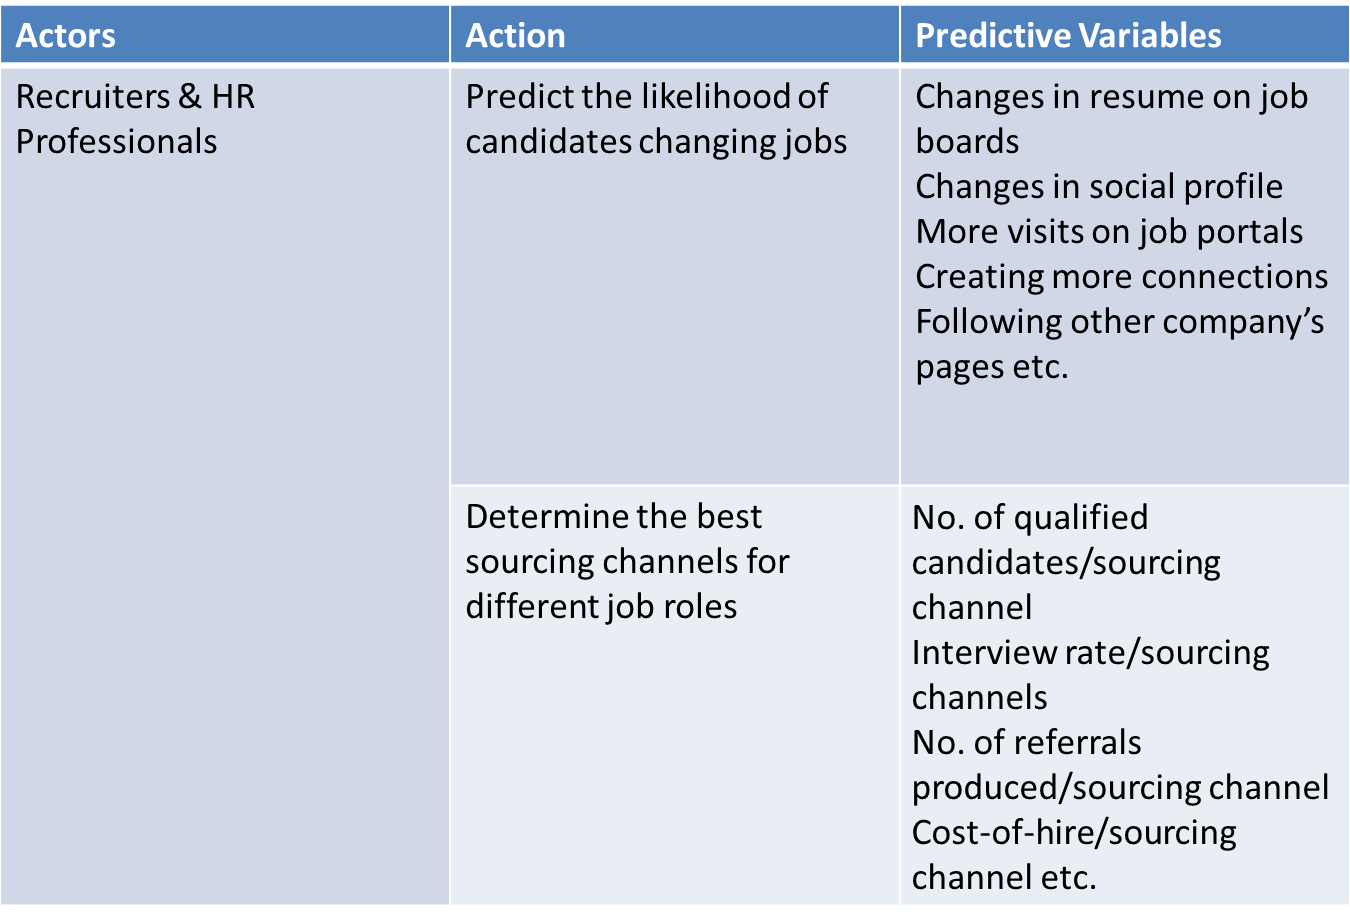 Table containing information on temp staffing actors and their actions